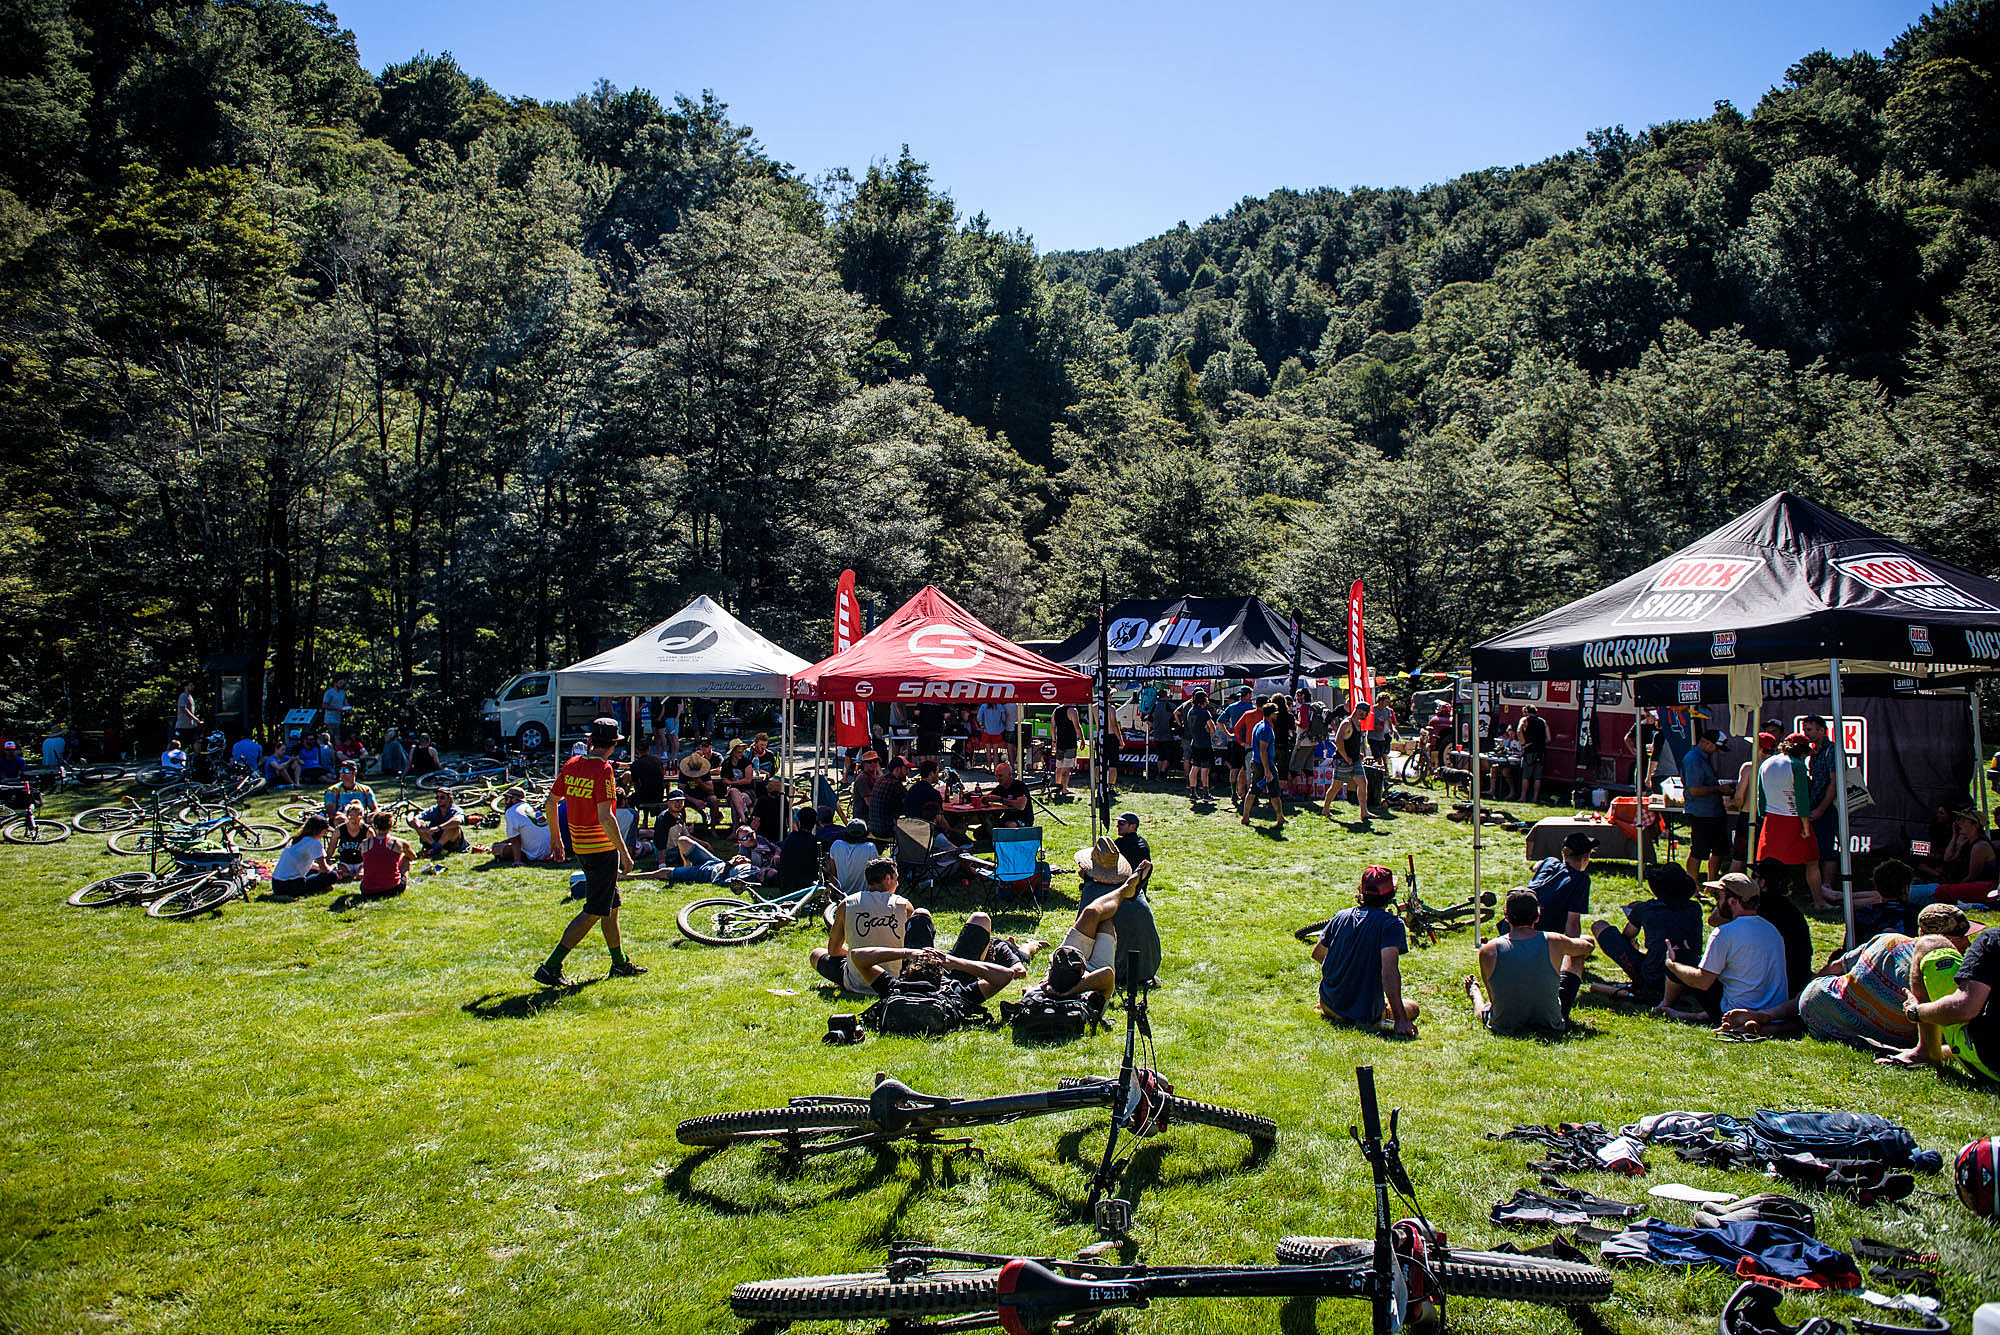 When racers arrived on the river terrace butchers flat they were treated to Granola from local legends Yum, and a coffee cart. Upon returning from the days racing they were treated to an event village packed with food, beer, a raffle raising money for Trailfund NZ and much needed shade from the blazing sun.